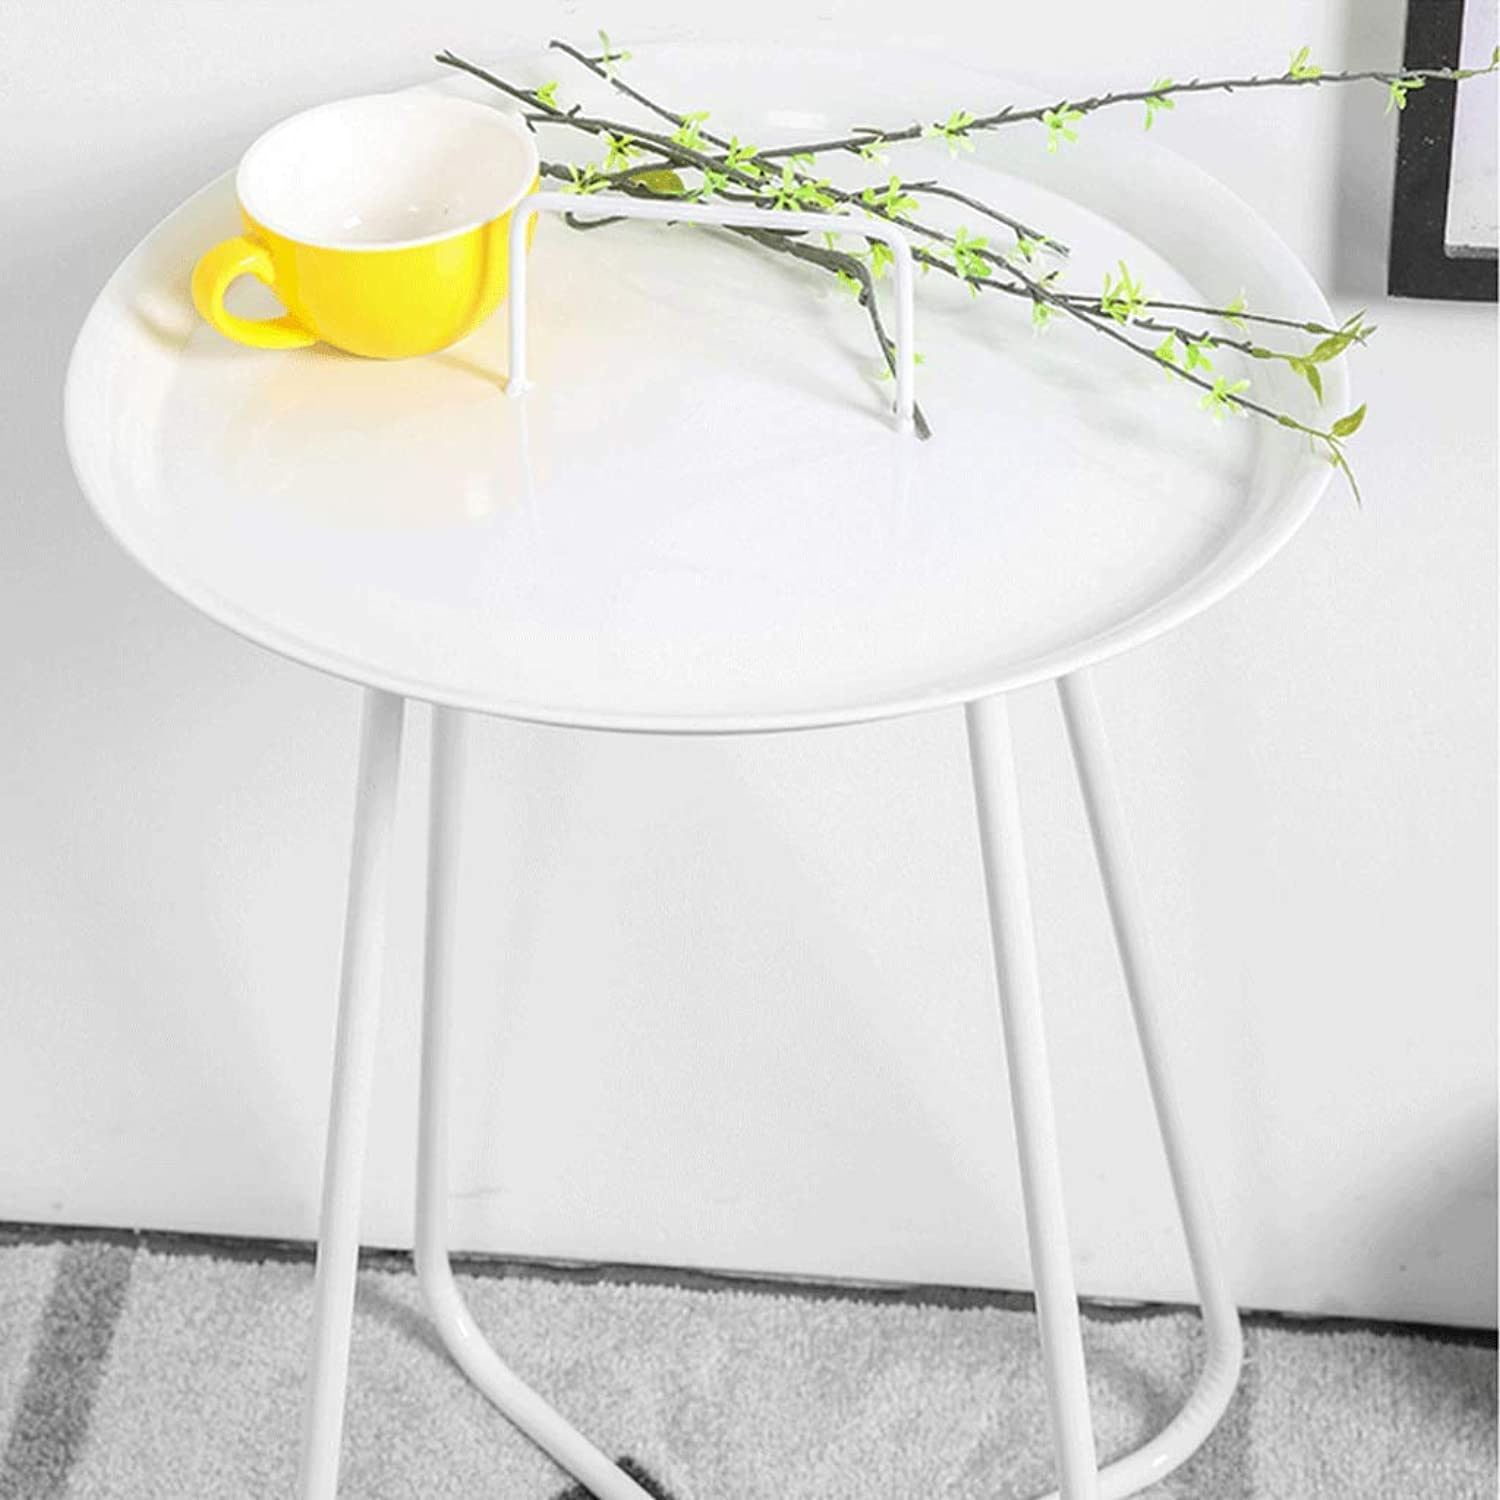 Small Round Table Simple European Wrought Iron Coffee Table Living Room Sofa Side A Few golden Small Round Table with Handles Can Be Lifted Multi-Functional Coffee Table (color   White)